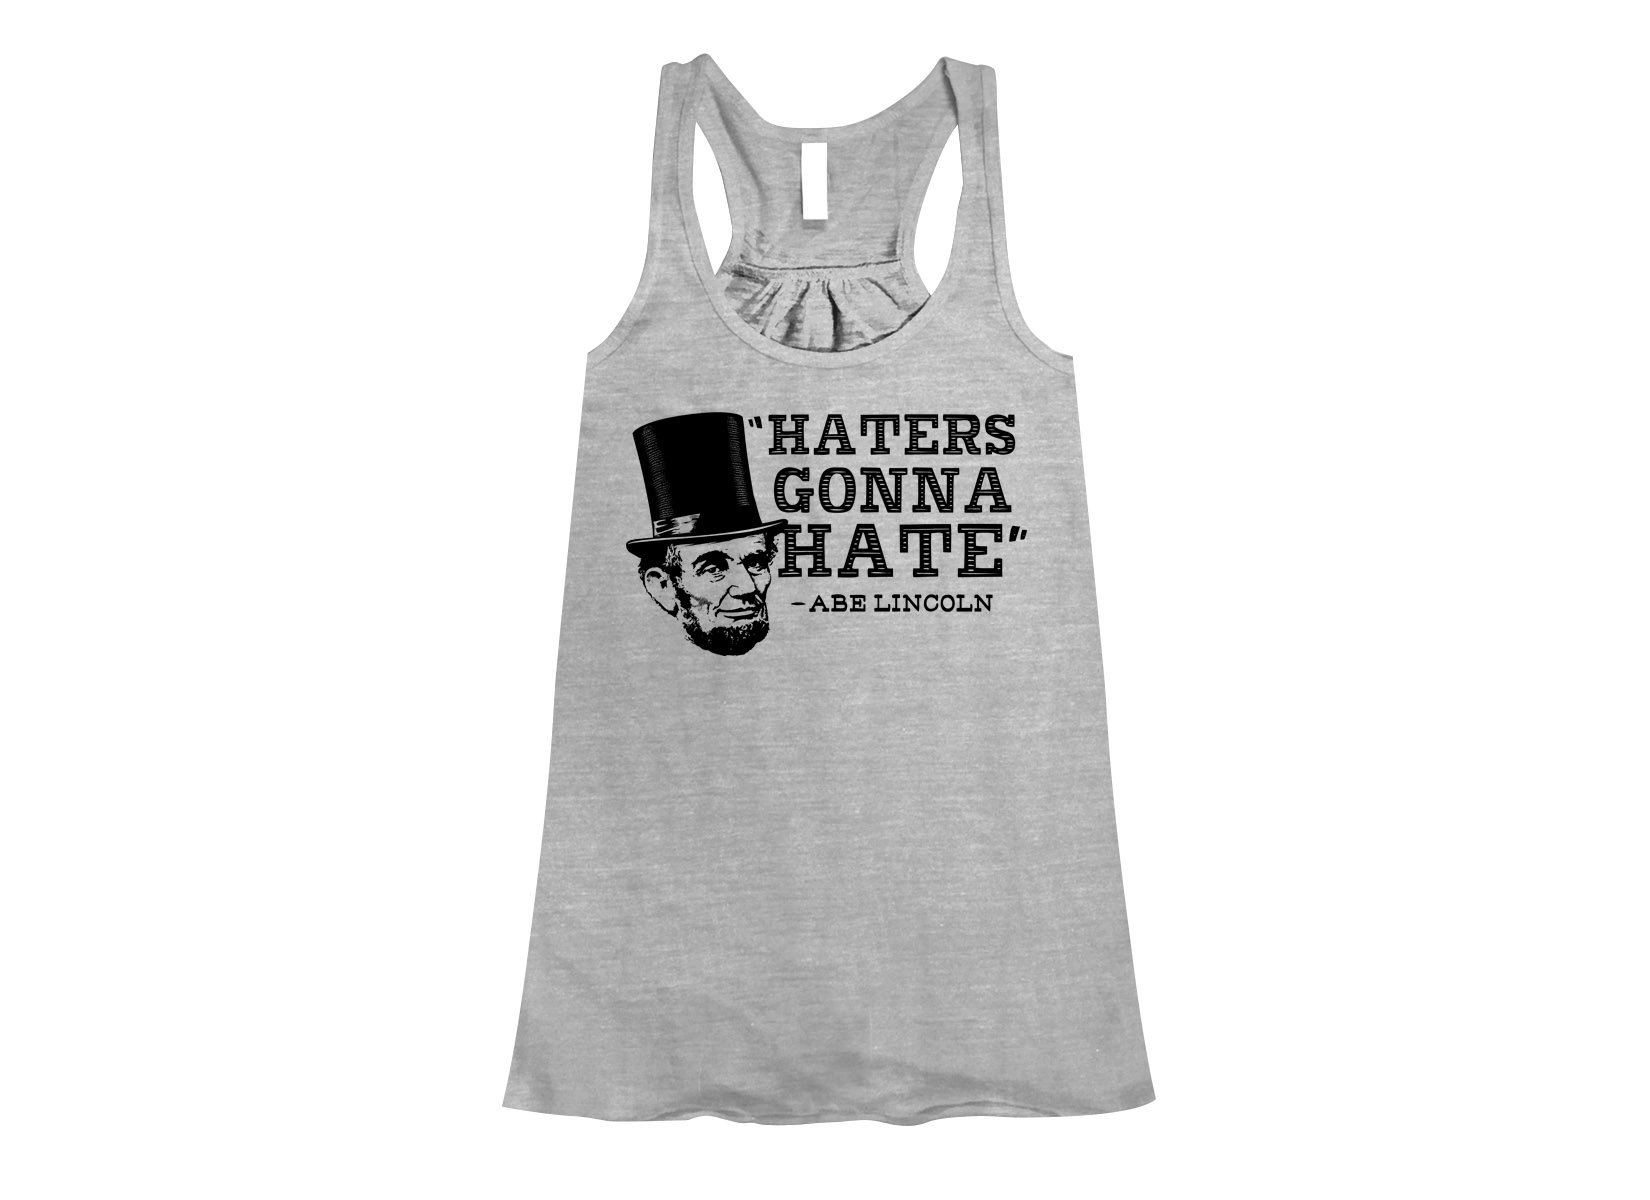 Haters Gonna Hate, Abe Lincoln on Womens Tanks T-Shirt